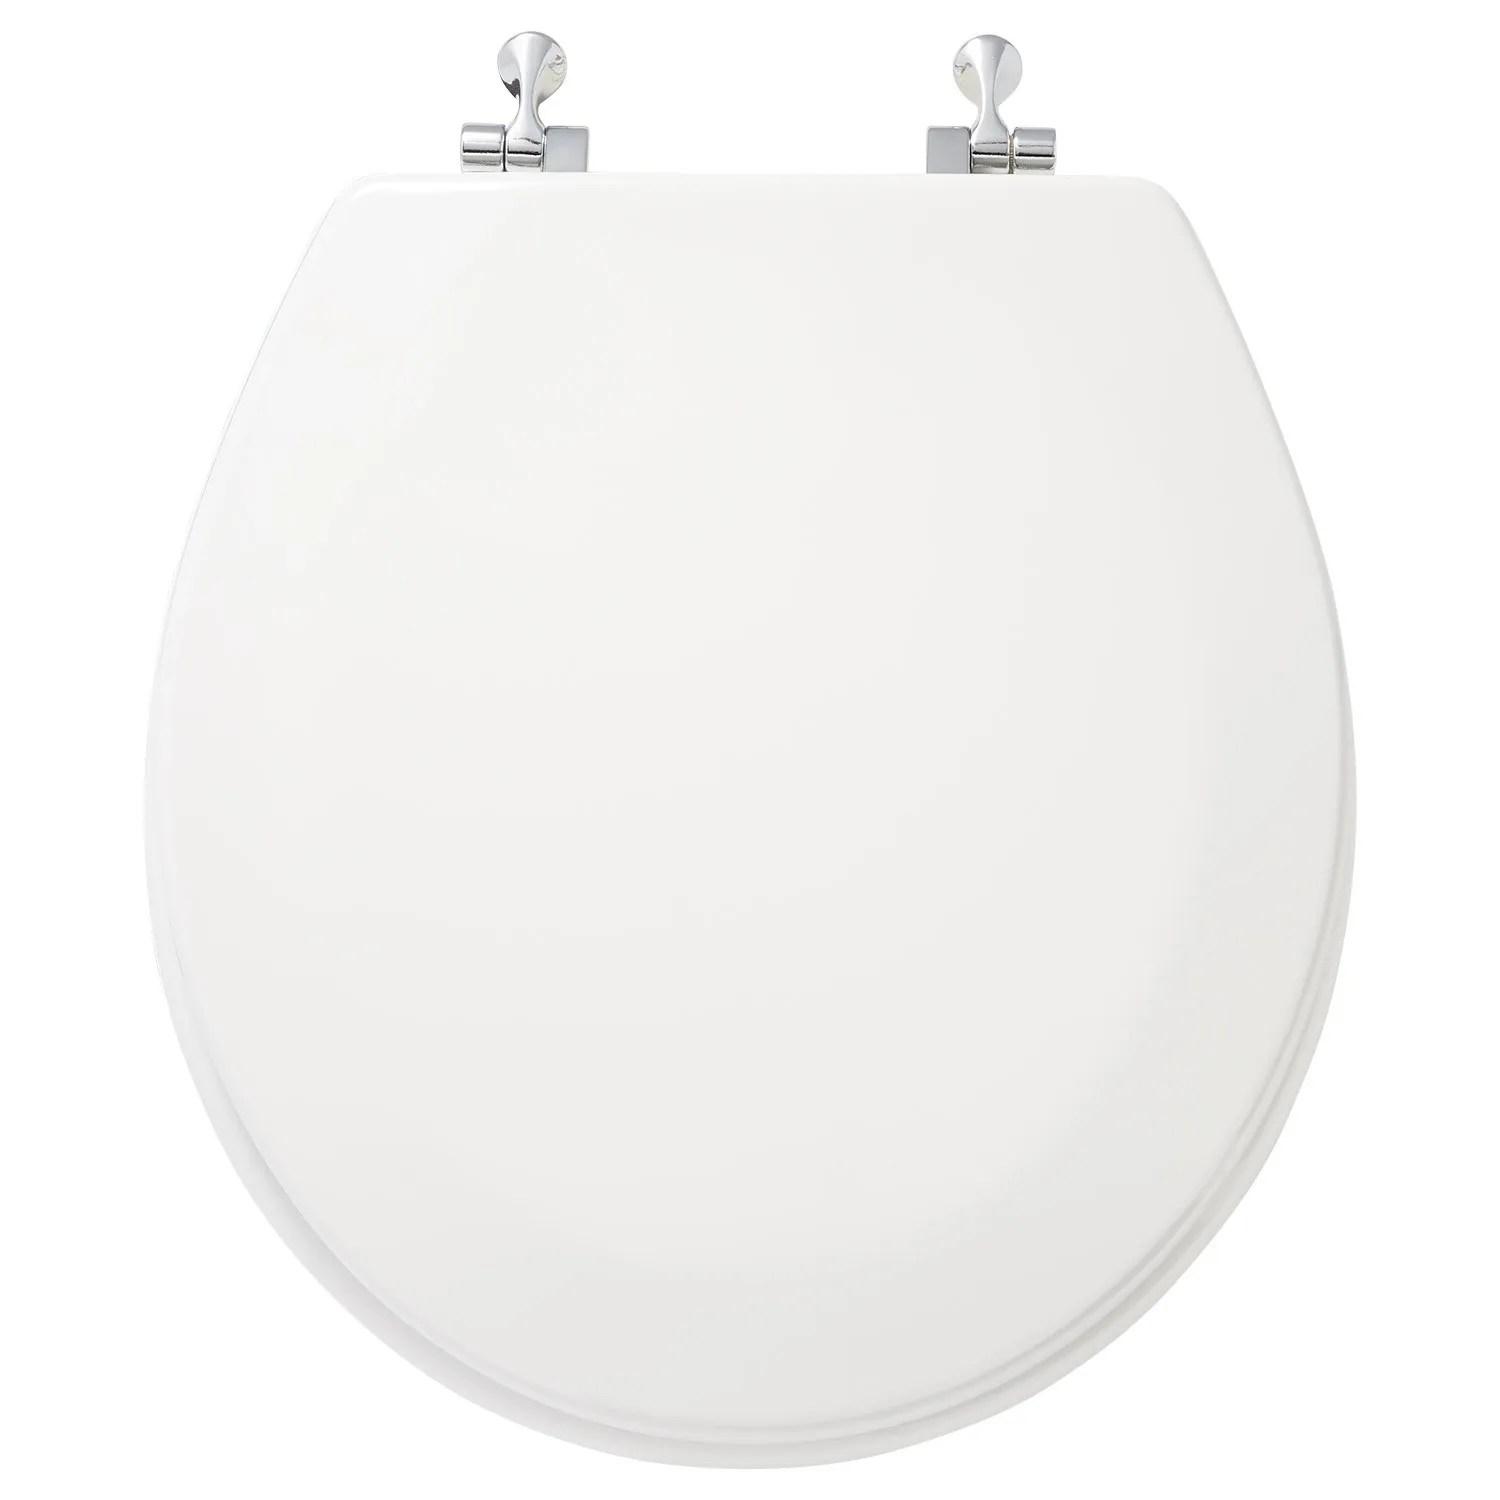 Deluxe Wood Toilet Seat With Standard Hinges White Bathroom